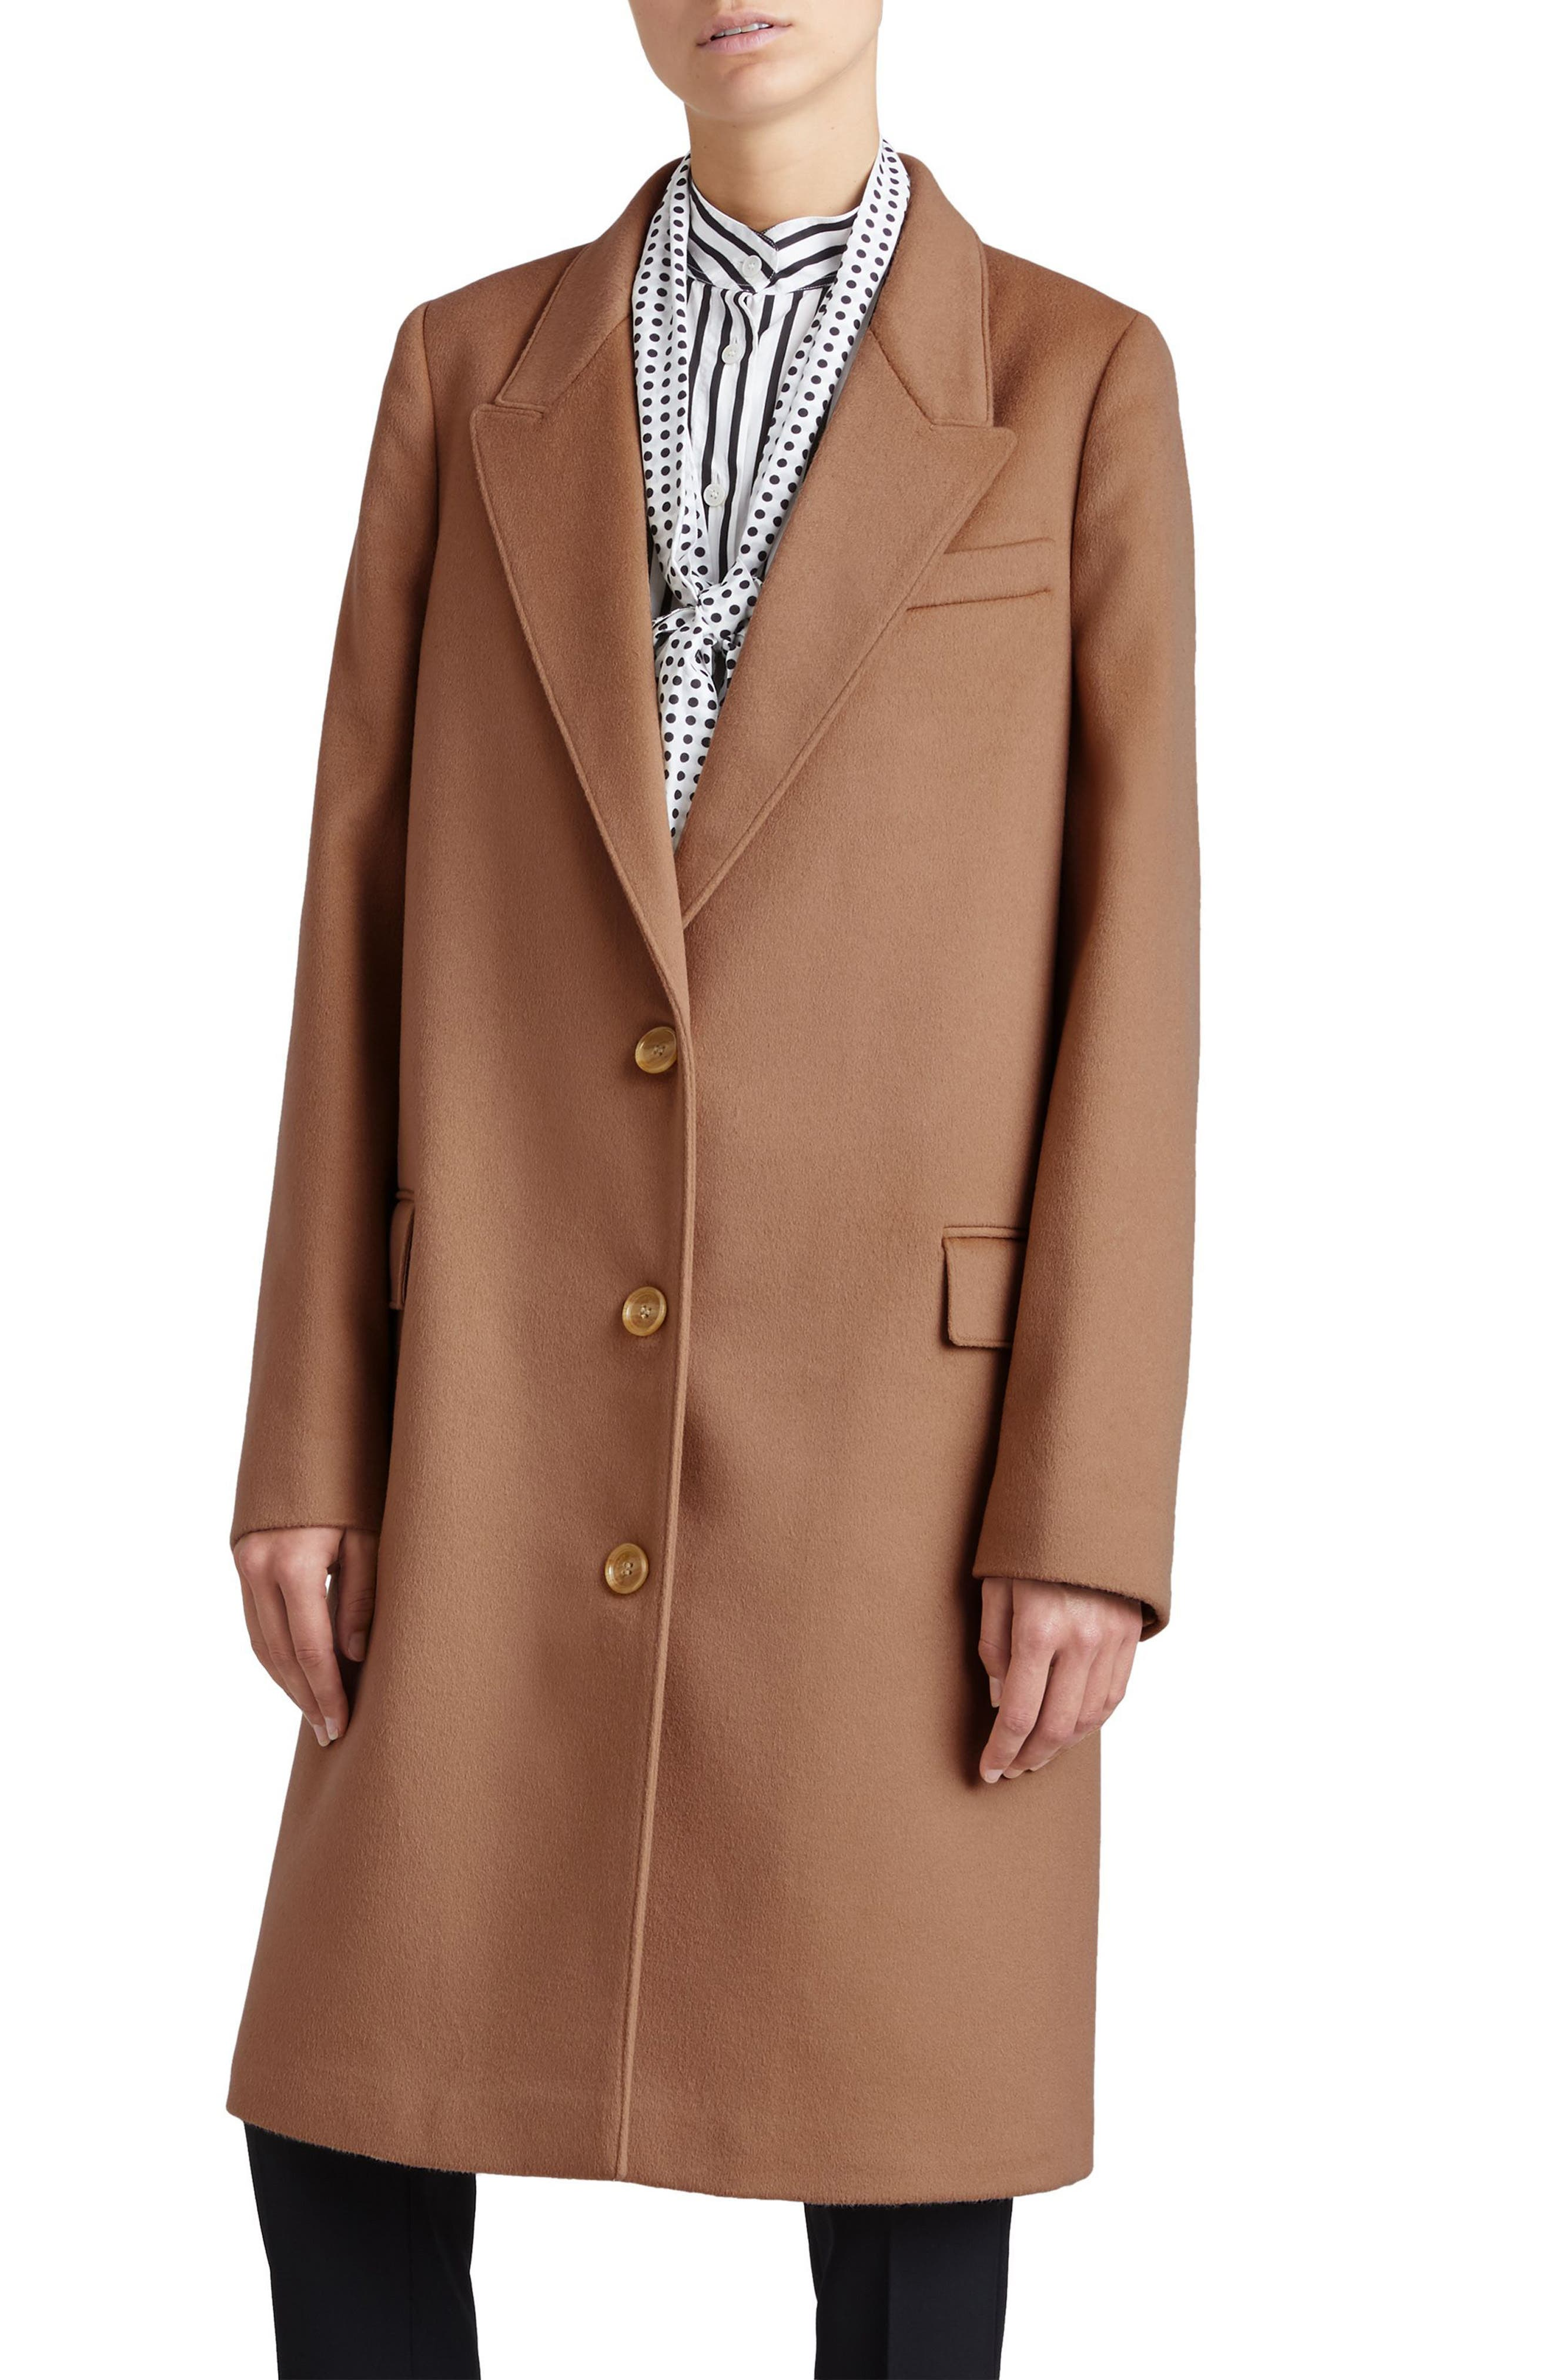 Fellhurst Wool & Cashmere Coat,                         Main,                         color, Camel